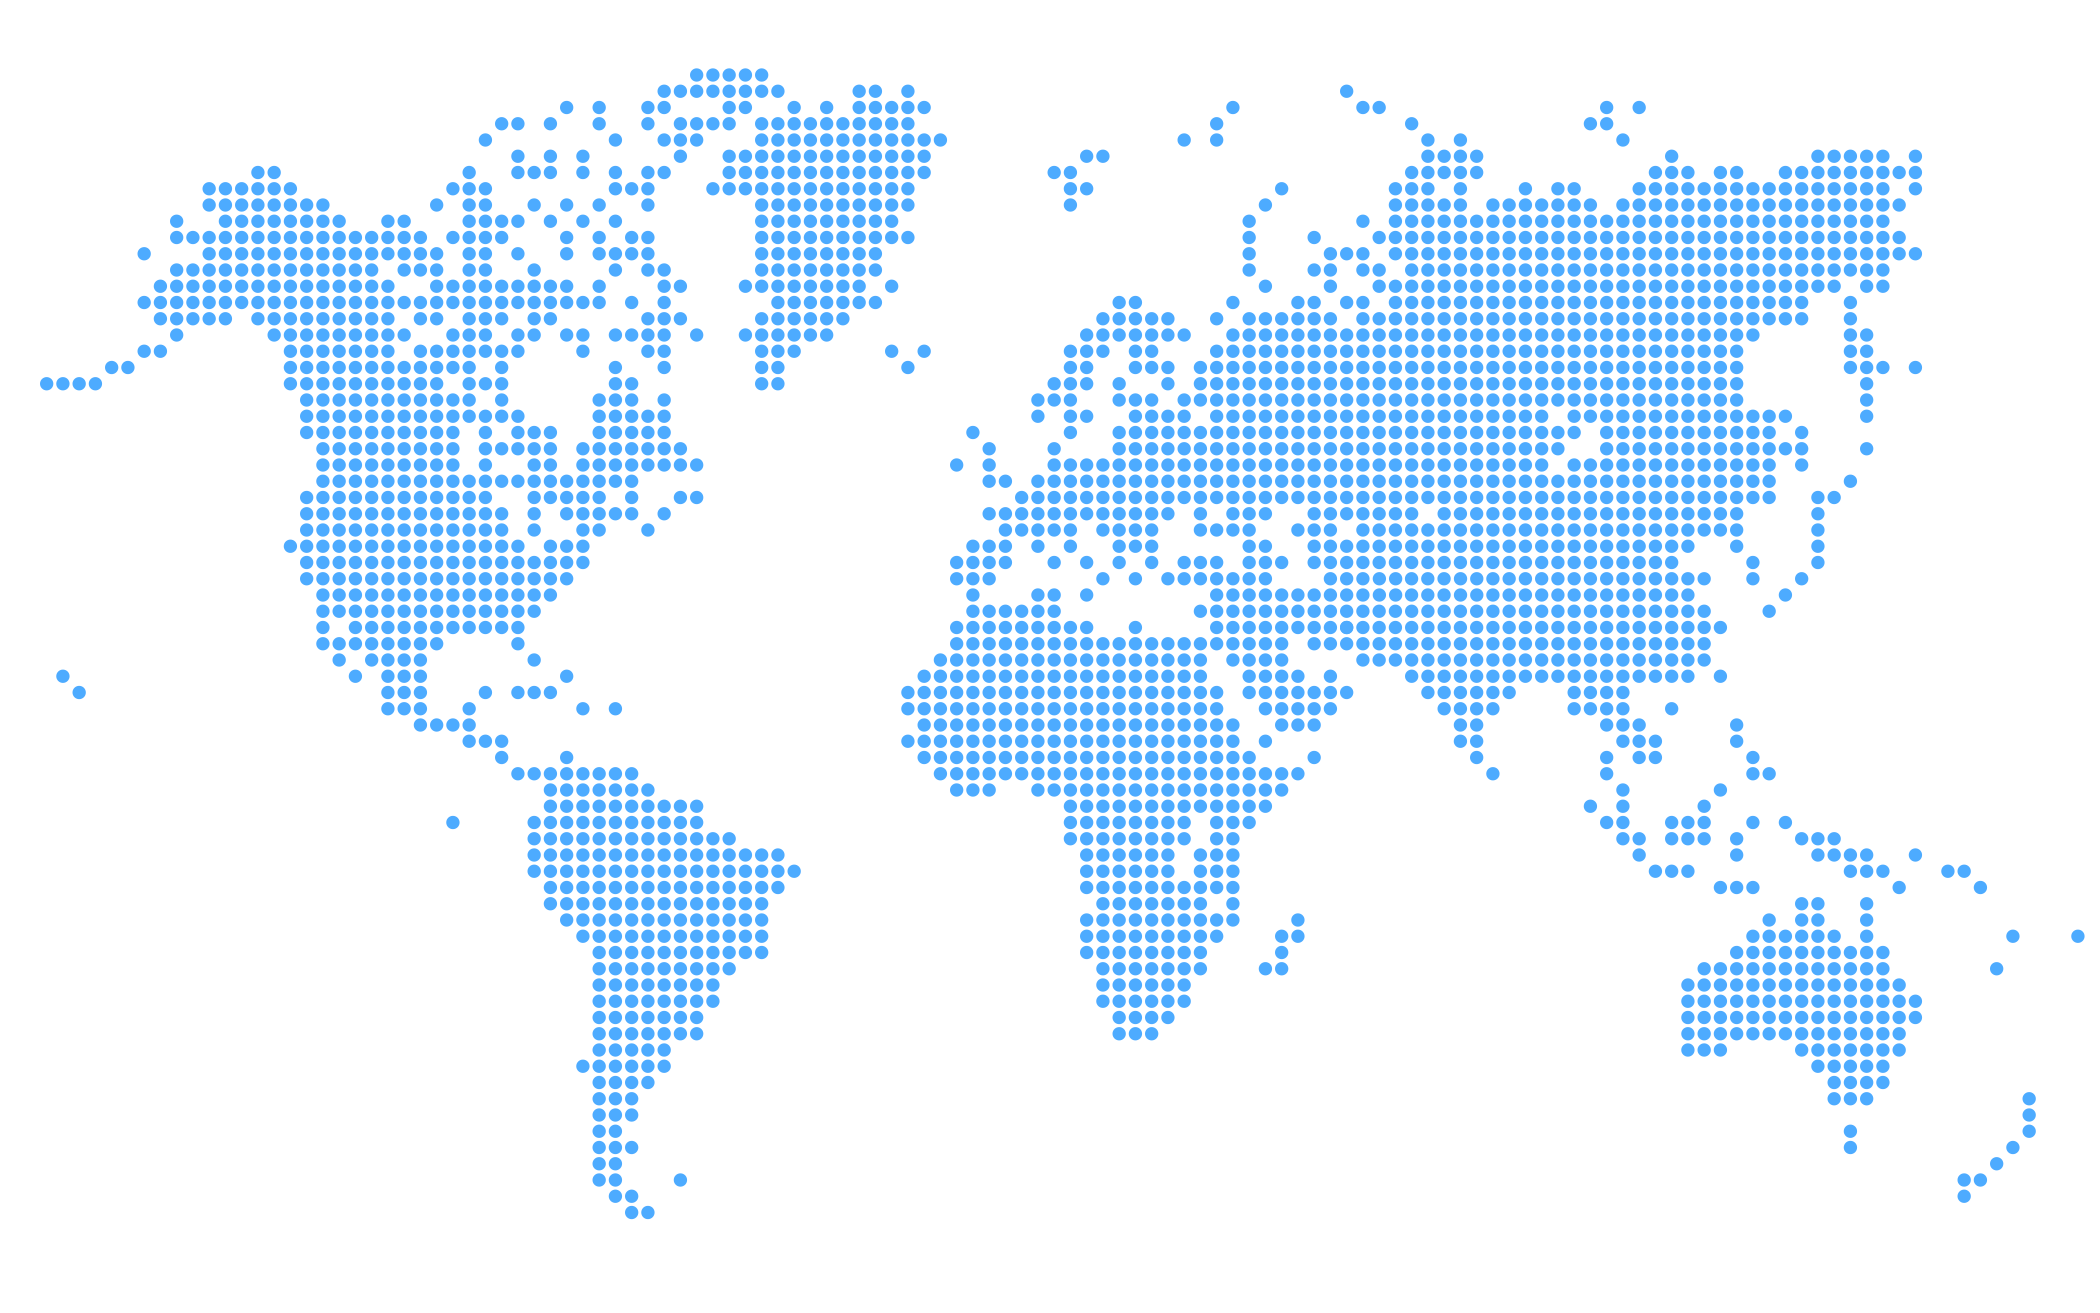 Transparent maps dotted. File world map blue